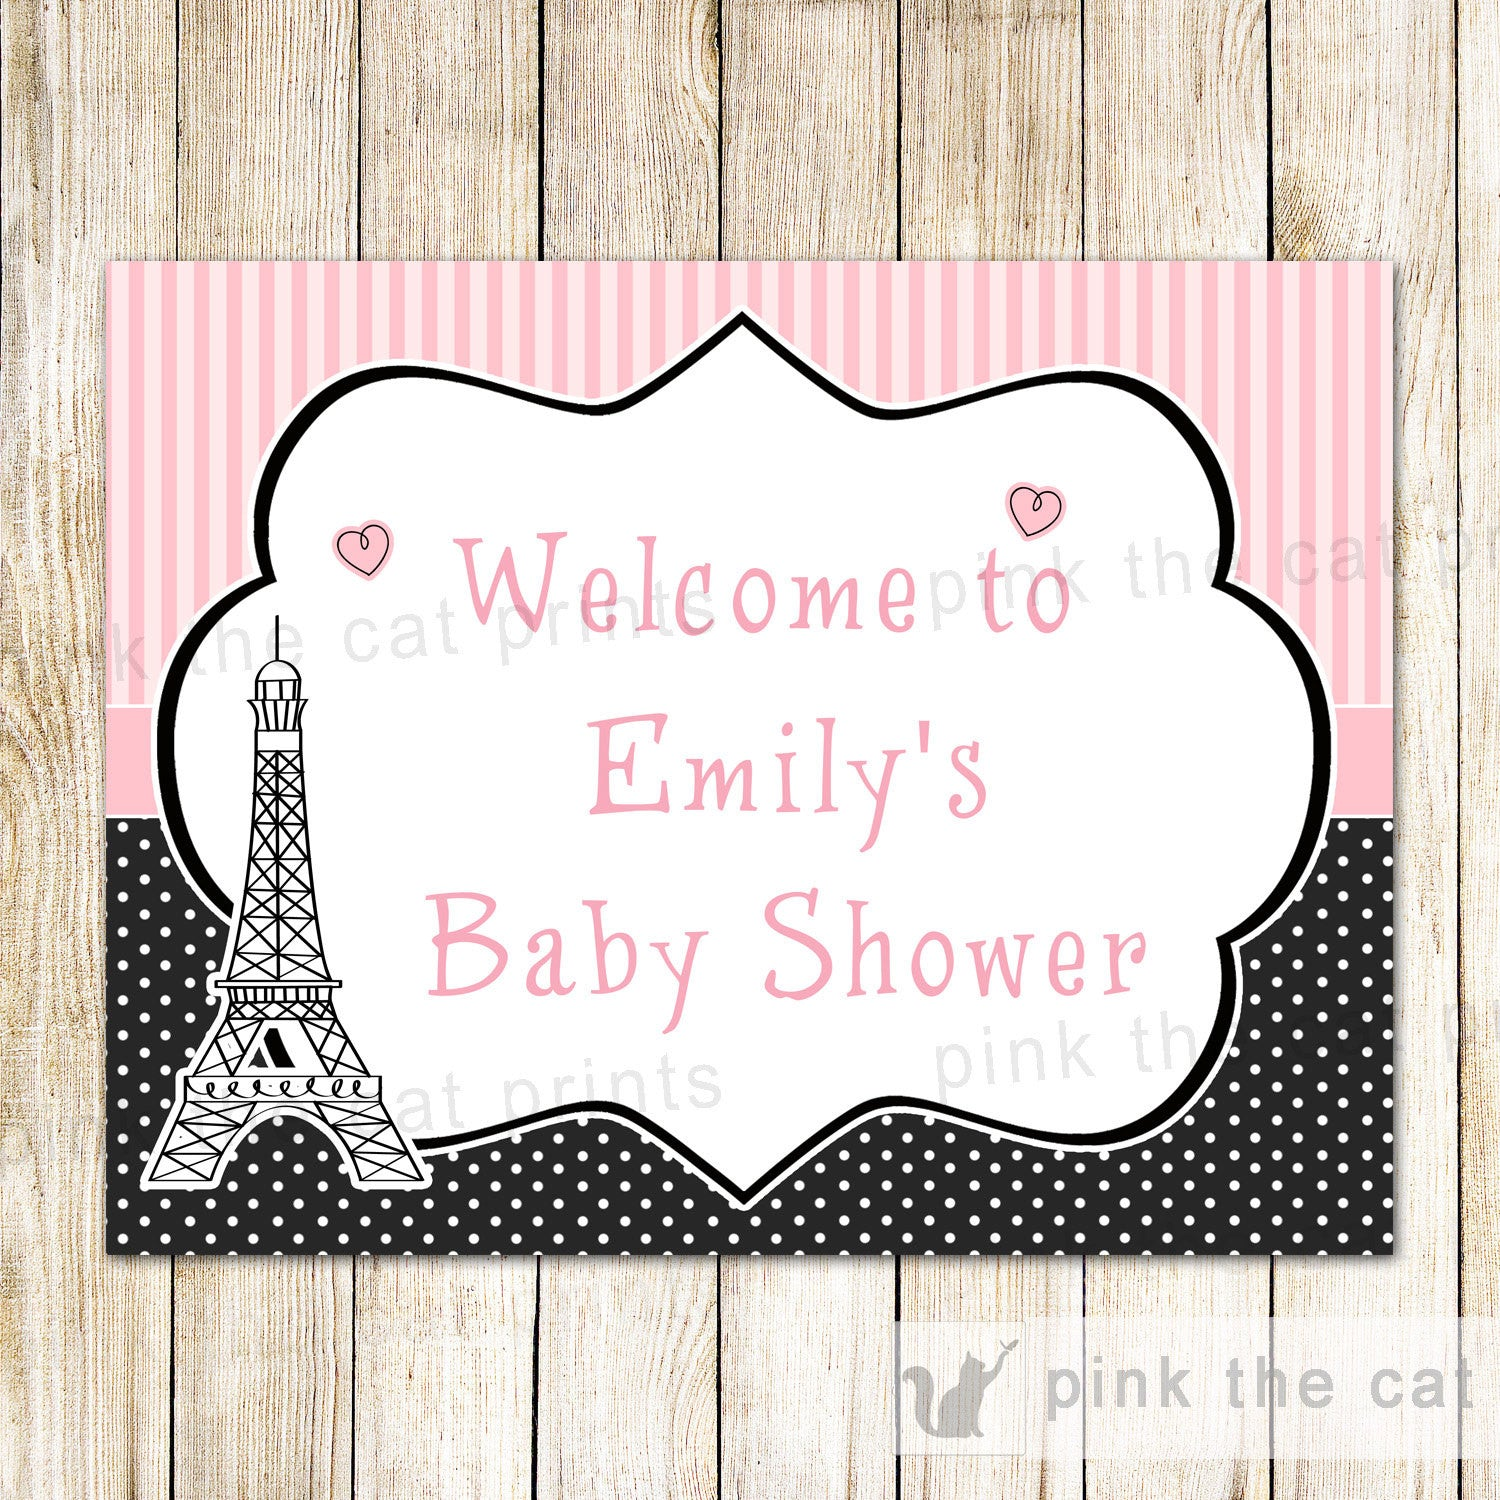 Paris Welcome Sign Eiffel Tower Birthday Baby Shower – Pink The Cat